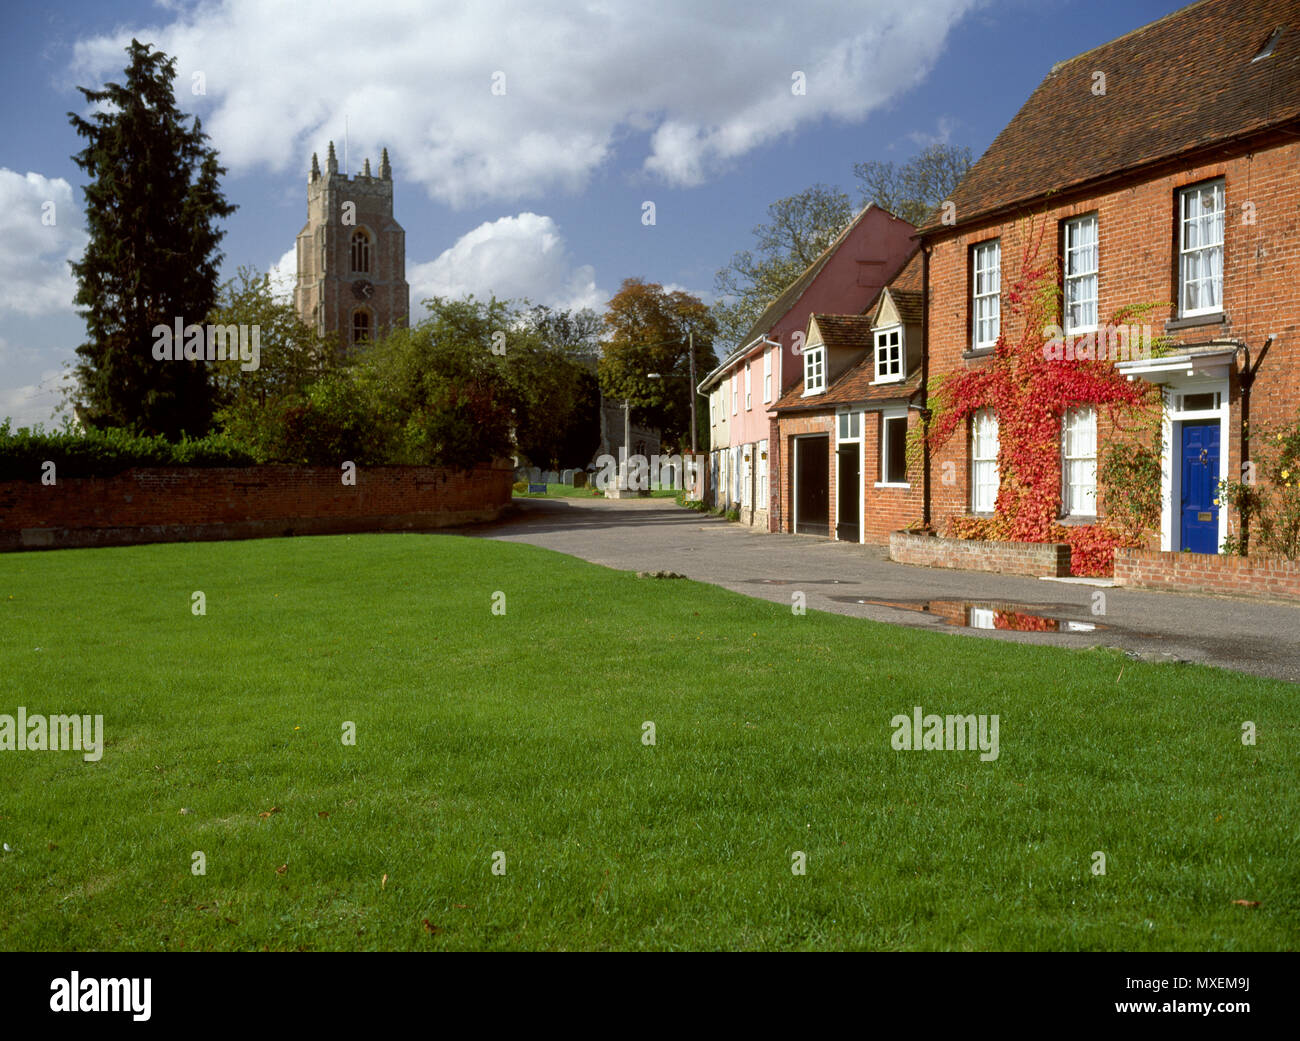 The village green at Stoke-by-Nayland, Suffolk - Stock Image